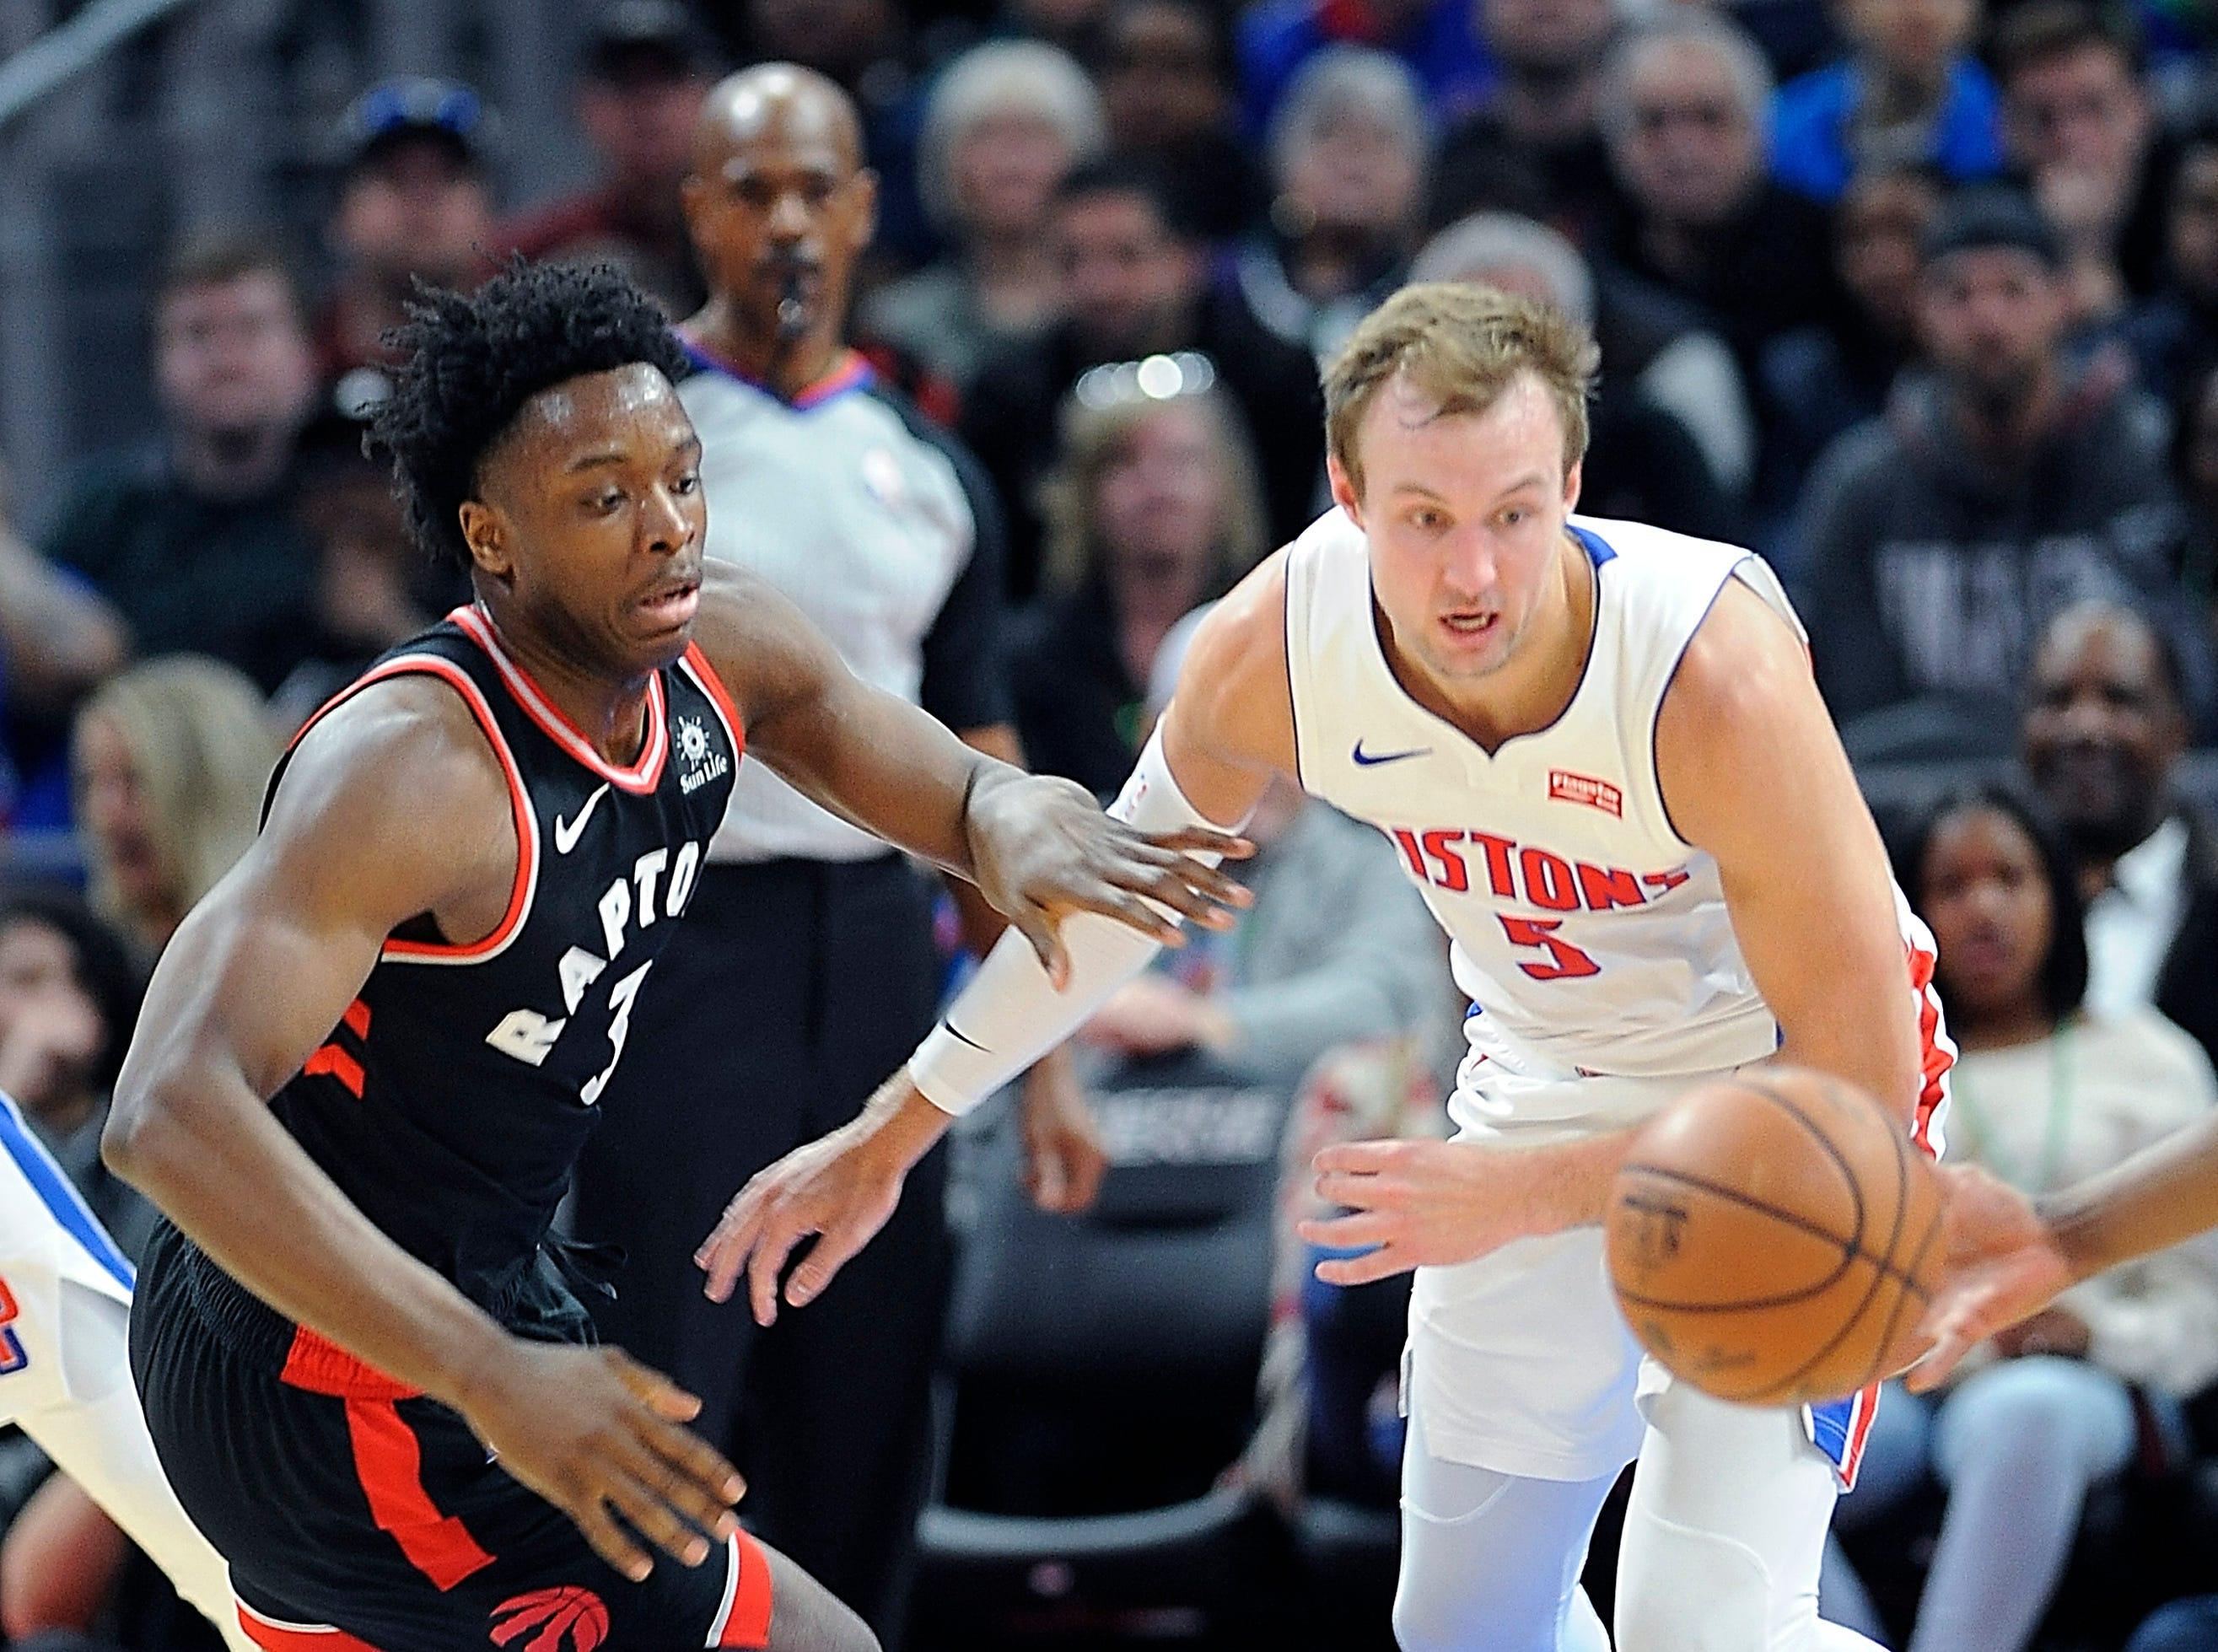 Pistons' Luke Kennard steals the ball from Raptors' OG Anunoby in the third quarter.